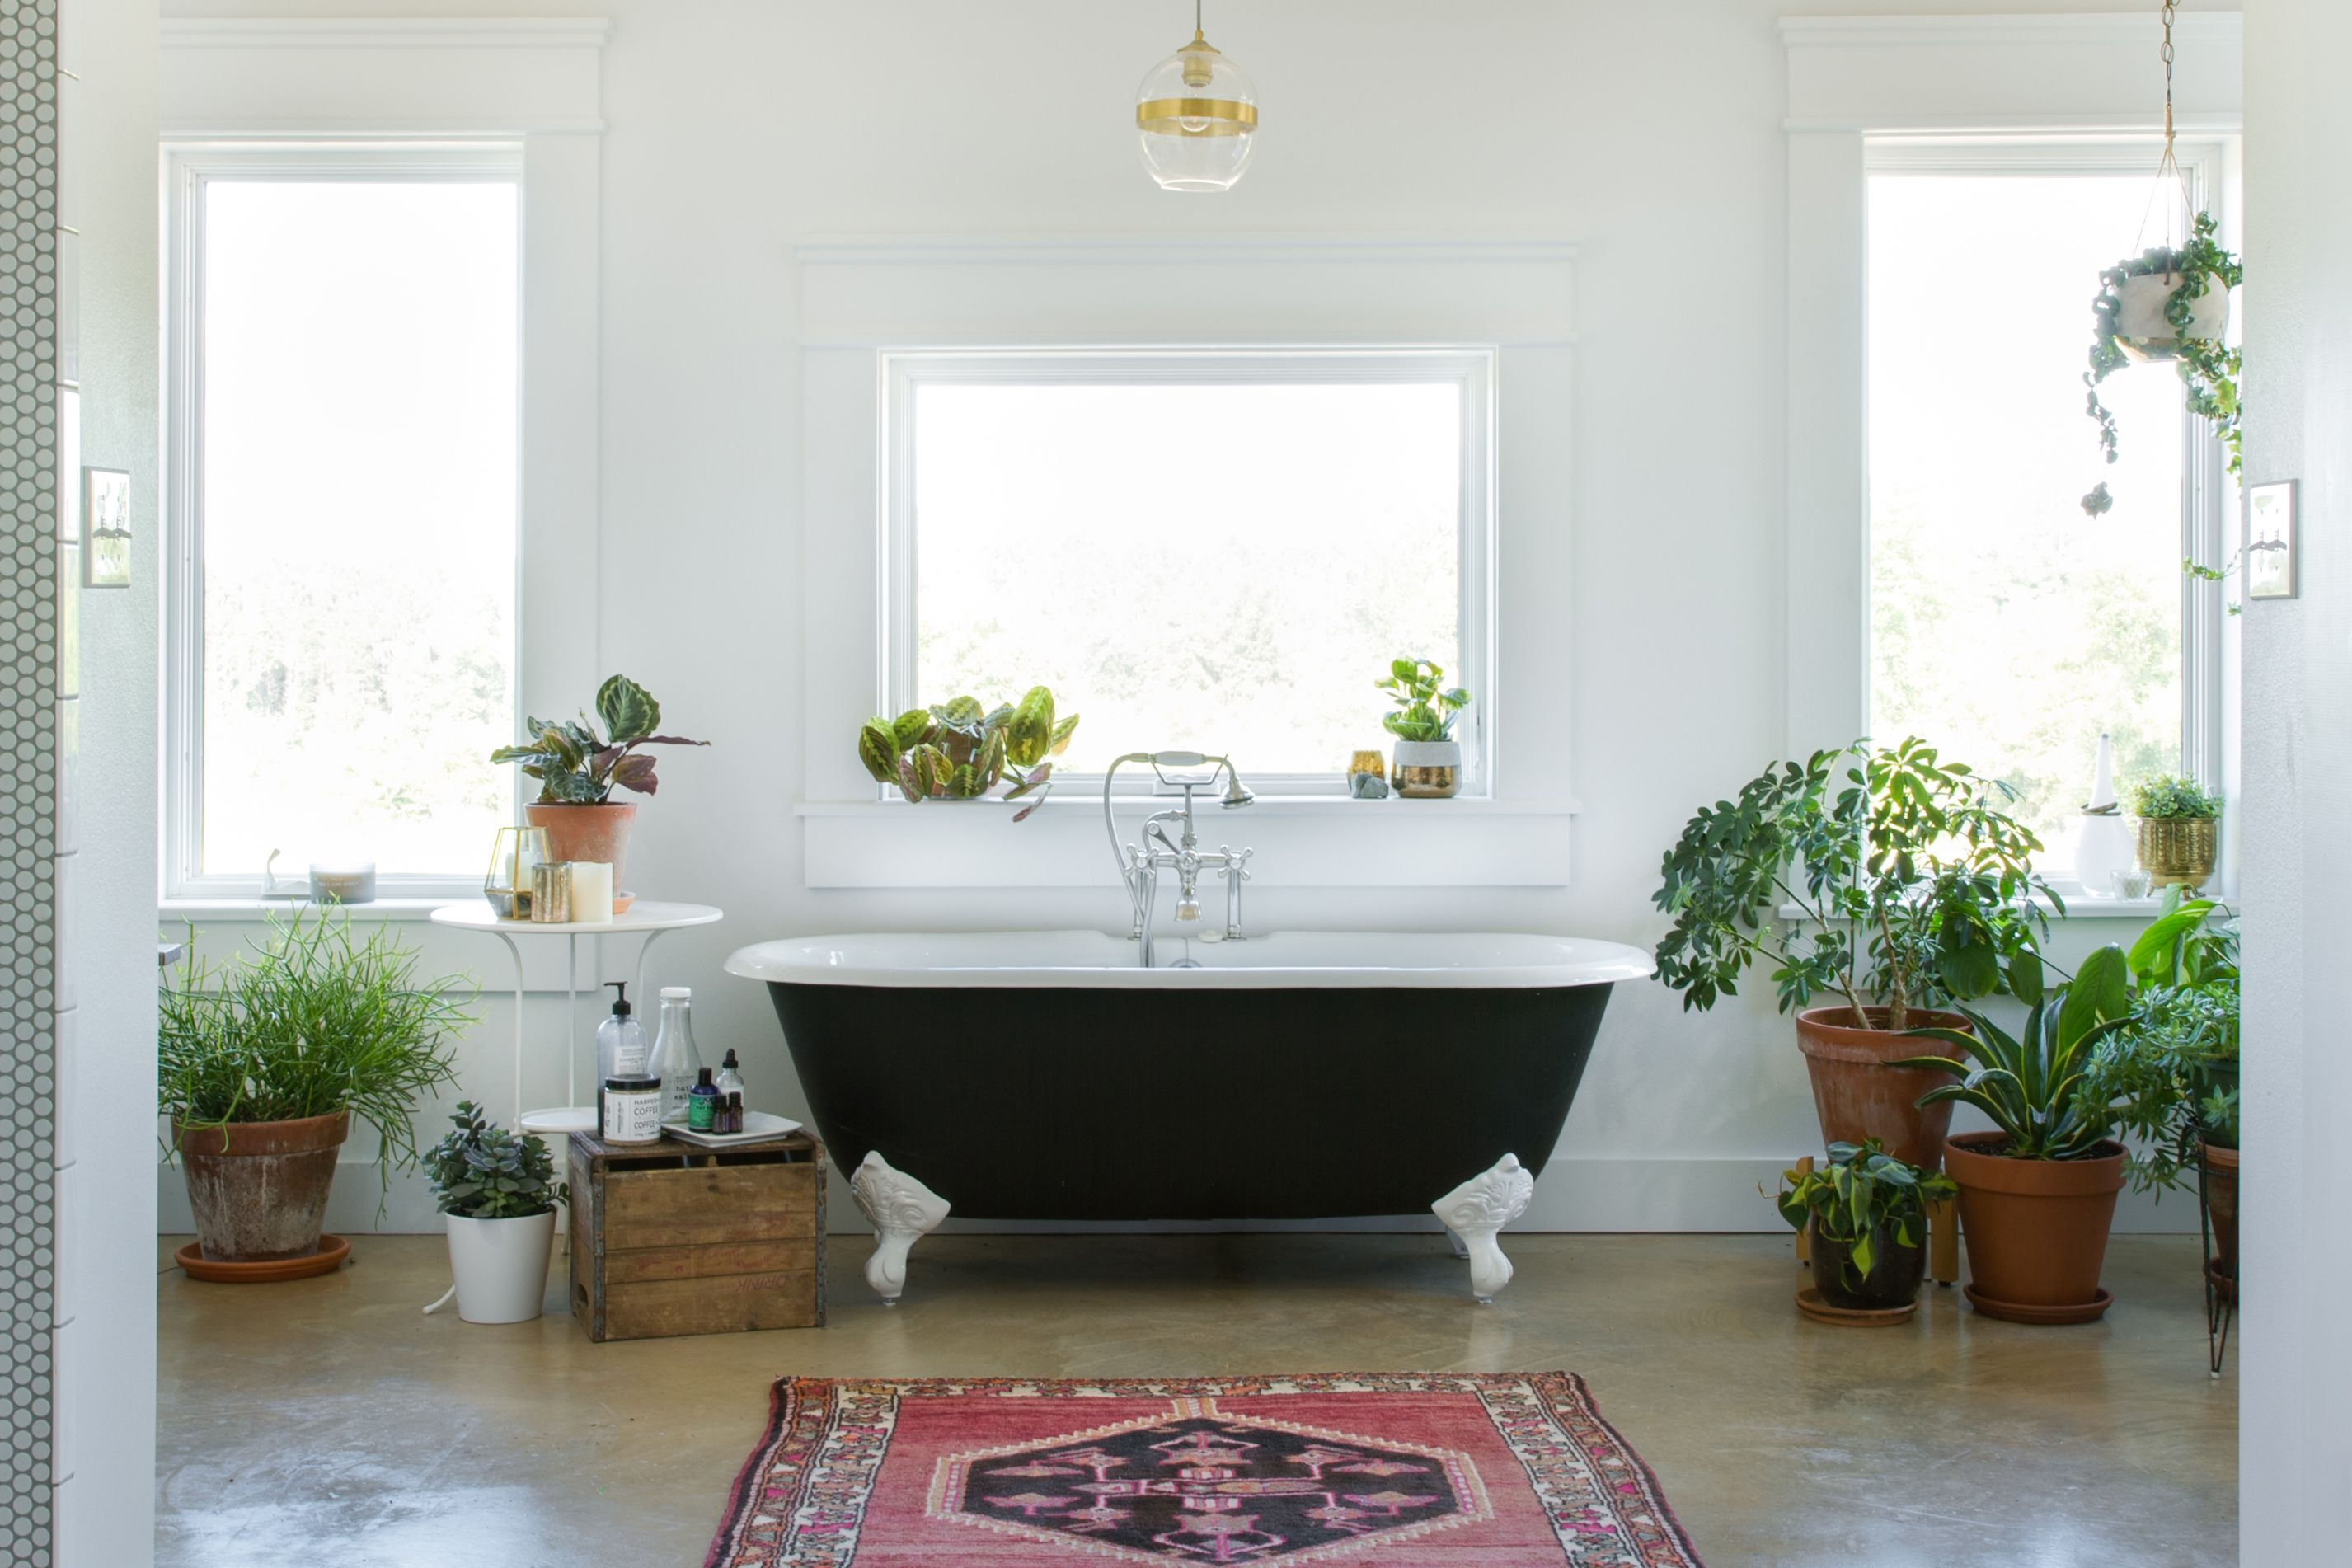 5 Stylish Ways to Warm Up Your Ice-Cold Bathroom in No Time ...